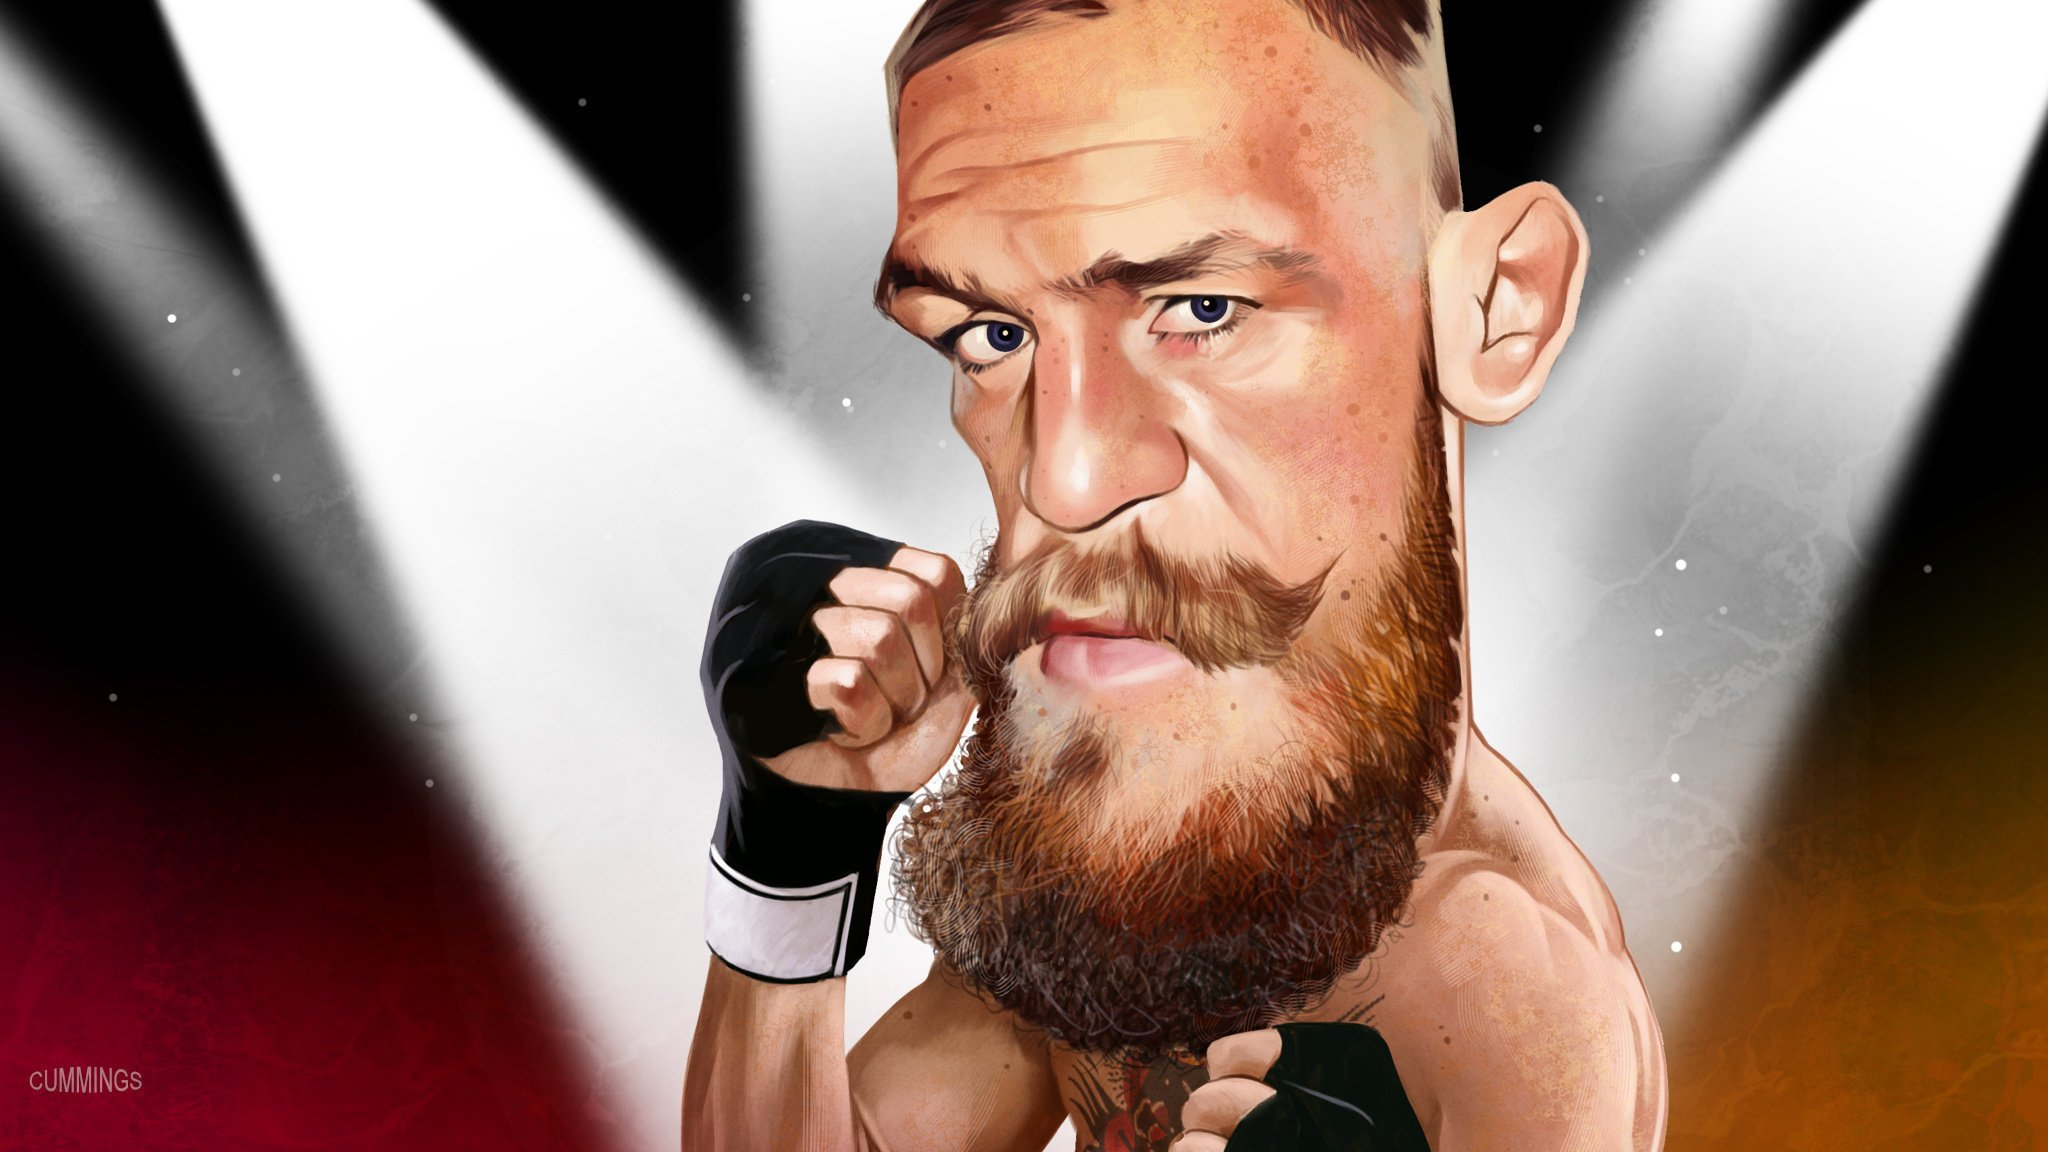 Conor Mcgregor A Brawler With The Gift Of The Gab